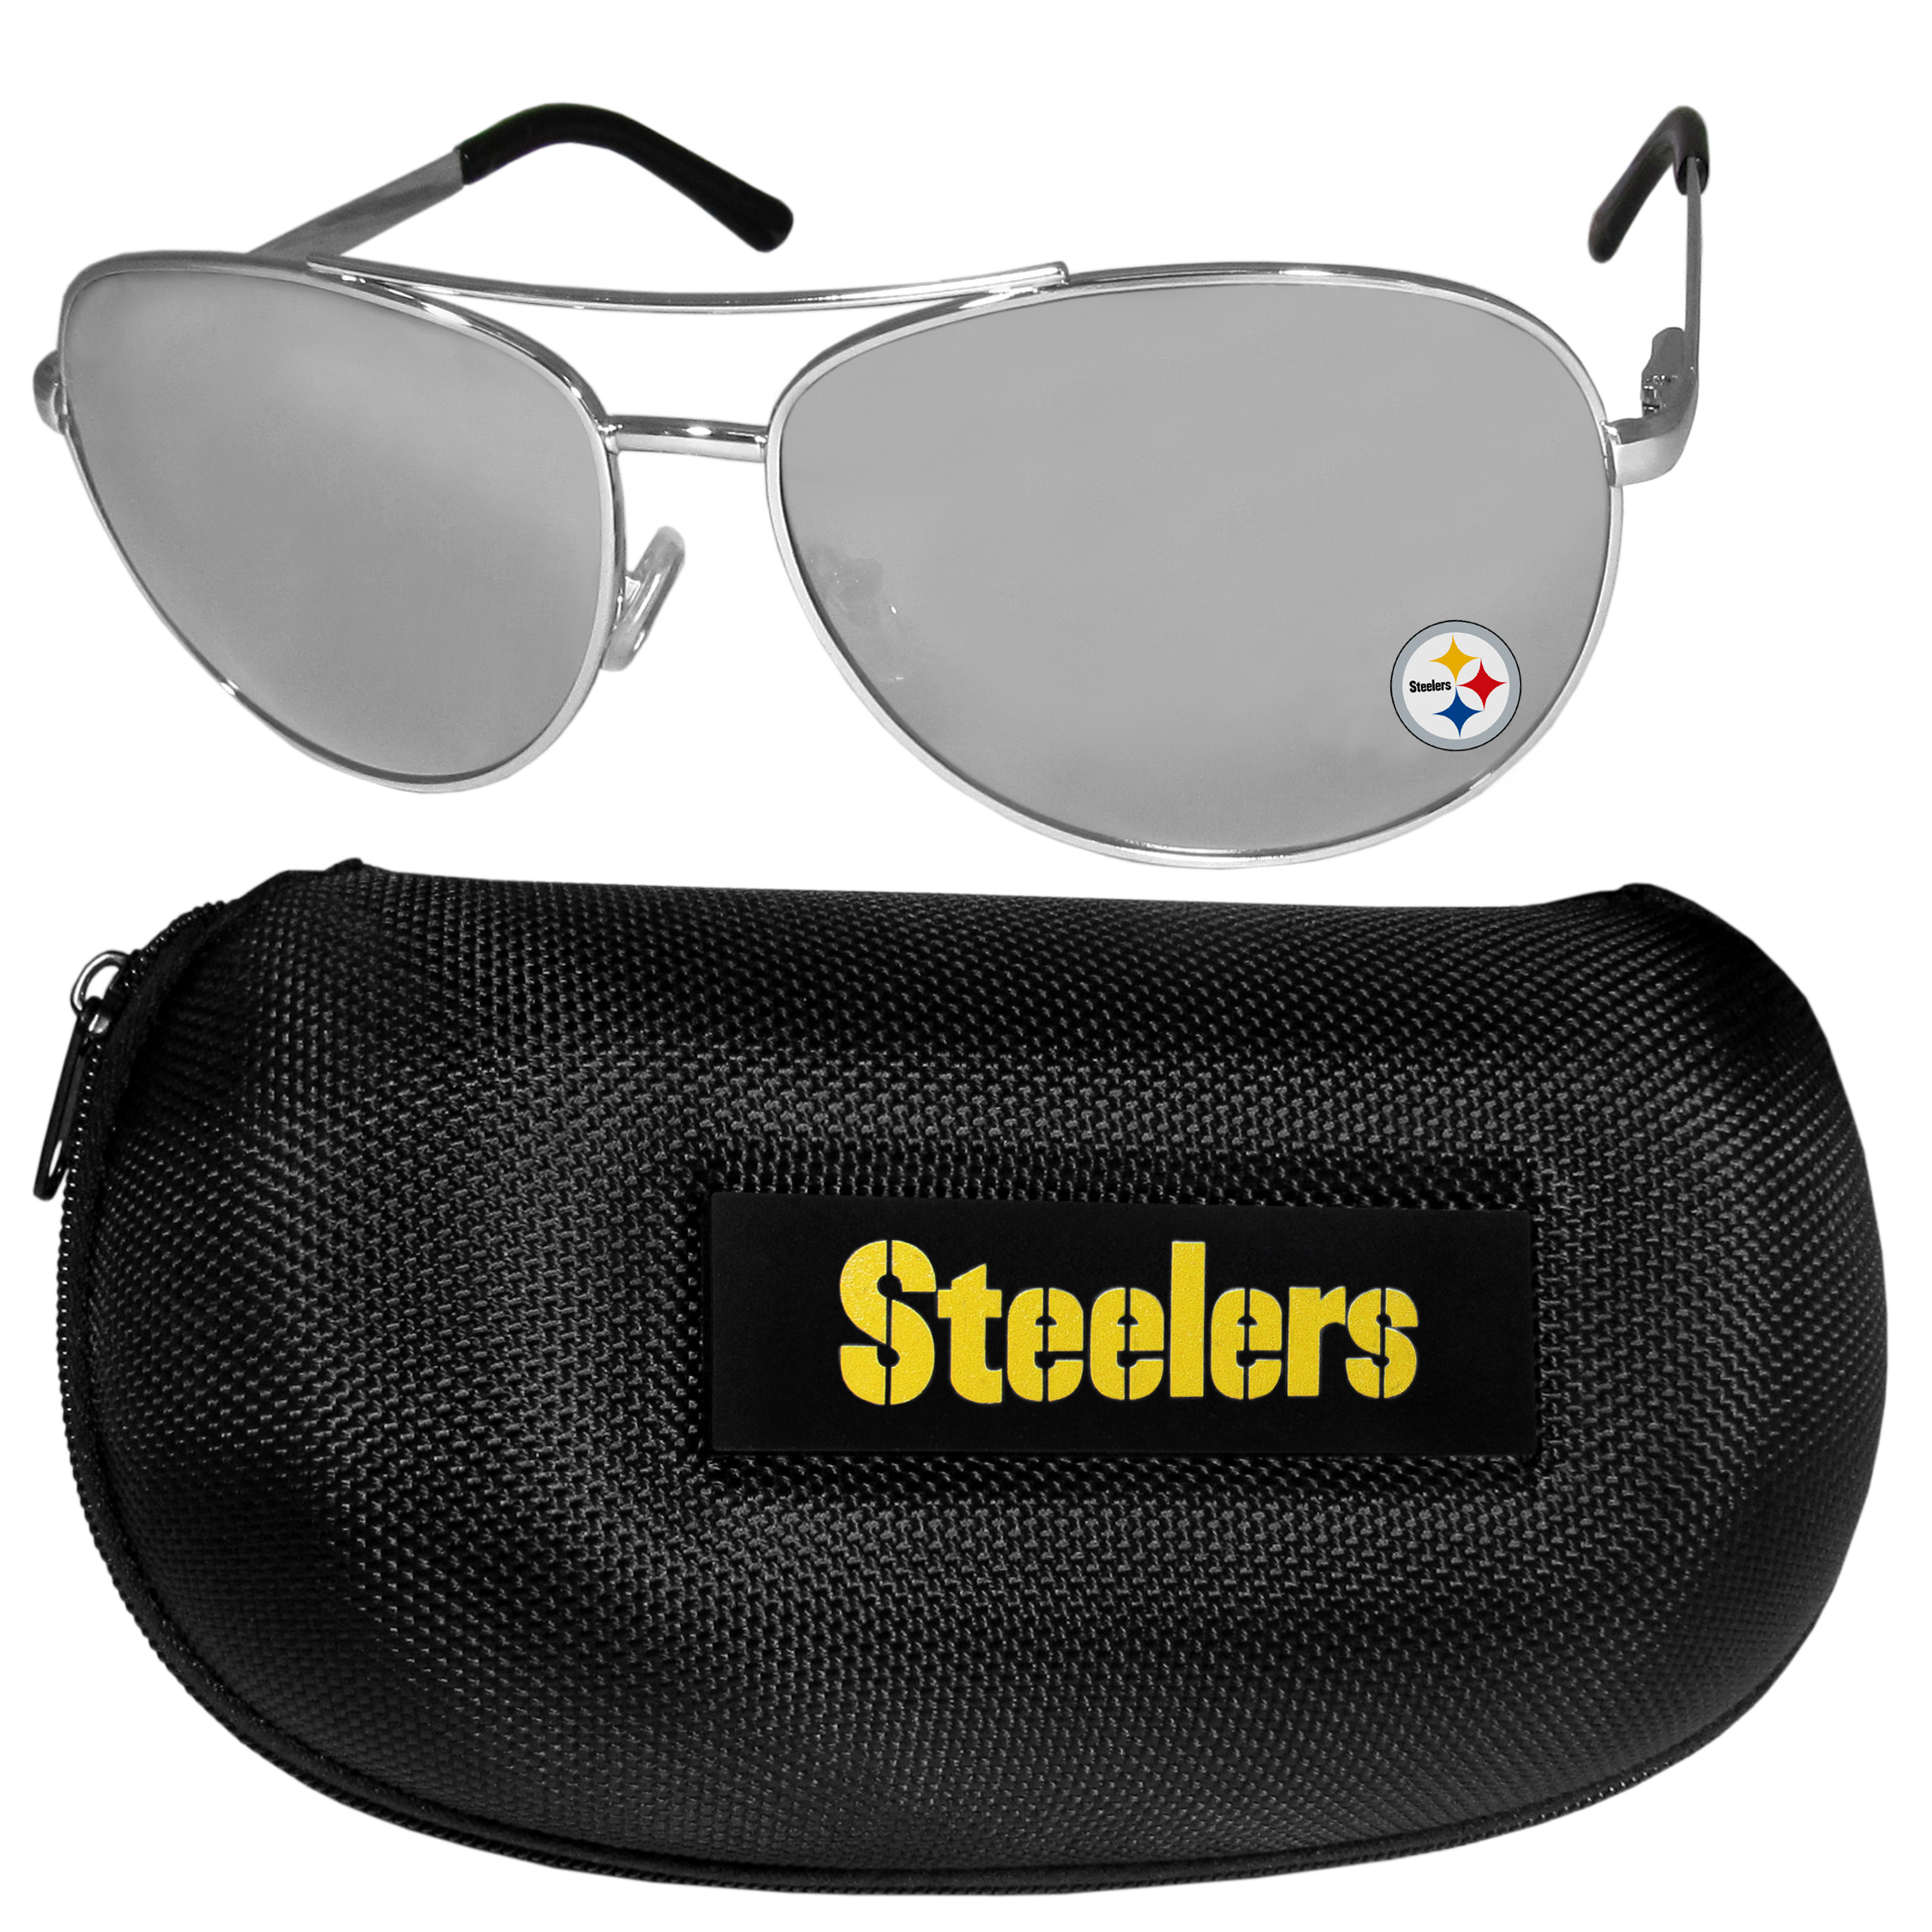 Pittsburgh Steelers Aviator Sunglasses and Zippered Carrying Case - Aviator sunglasses are truly an iconic retro fashion statement that never goes out-of-style. Our Pittsburgh Steelers  aviator sunglasses pair this classic look with your love of the game. The iridium coated lenses reduce glare while driving, boating, golfing and their 100% UVA/UVB rating provides you with the maximum UV protection for all your outdoor activities. A millennial favorite, these affordable designer frames are the perfect eyewear accessory for a sports fan that is looking for high-quality at an affordable price. The durable, flex hinged frames are tough enough for hiking and camping or if you prefer sun bathing by the pool or on the beach these shades will really stand the test of time. The sunglasses come with a hard shell zippered case which has a large team logo on the lid that will make even the most die-hard fan proud!